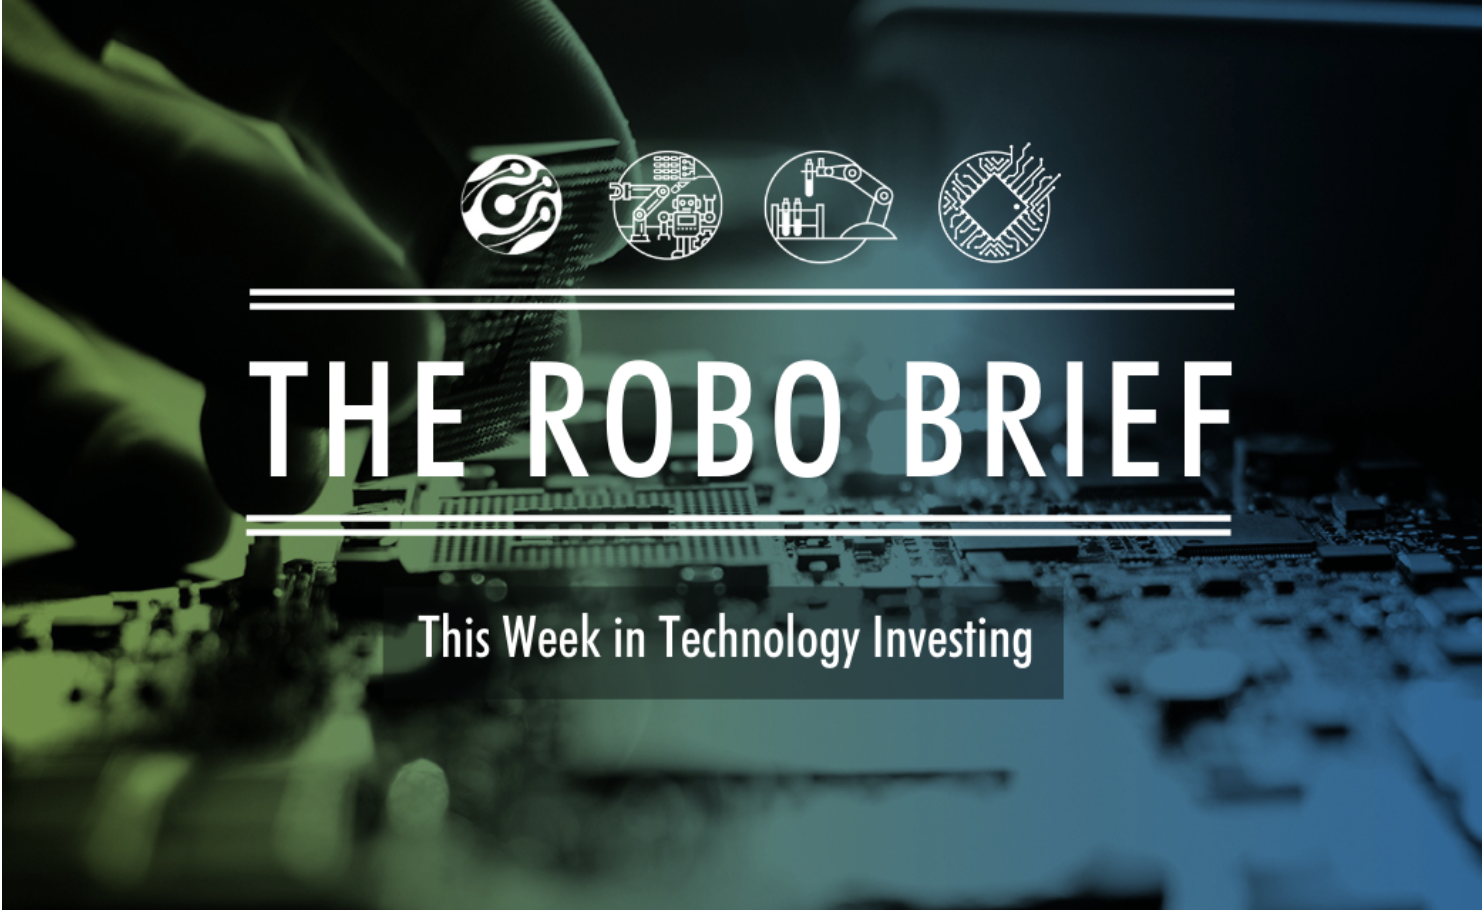 ROBO Brief: 5G, Another Acquisition & A Conversation with Vocera's CEO